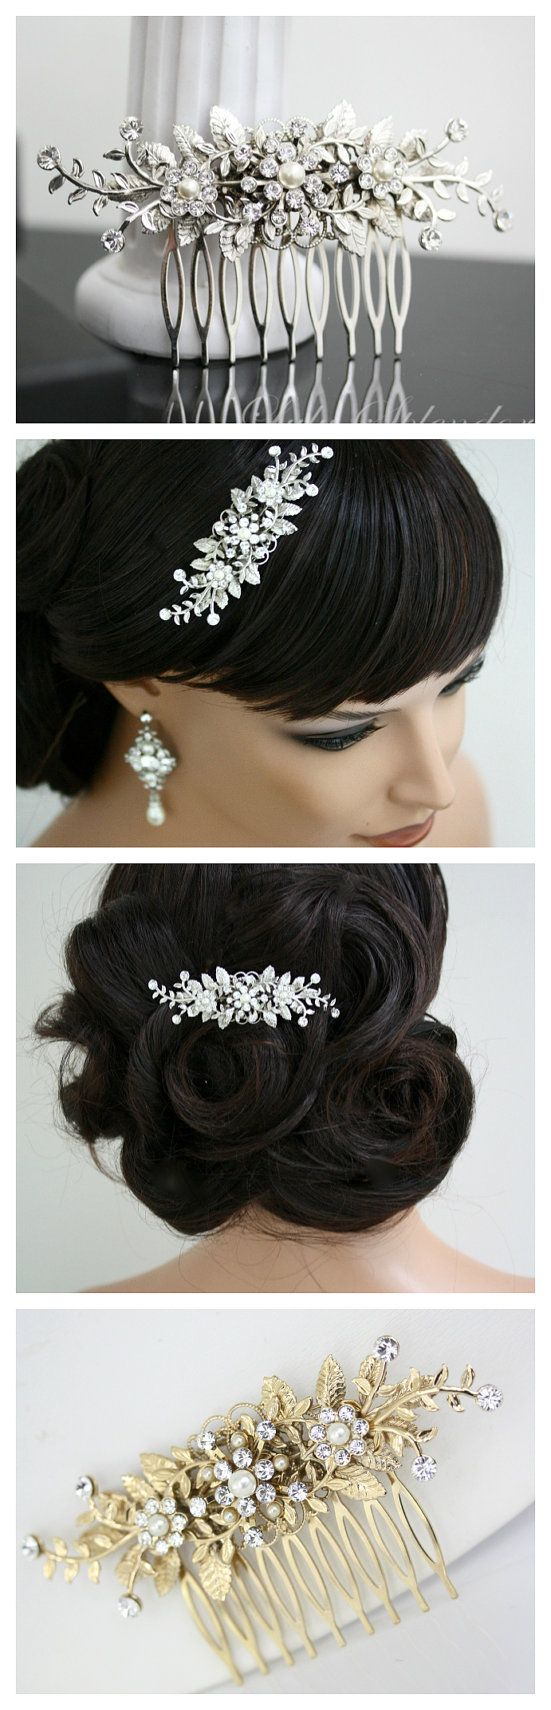 Bridal Comb Vine Leaf hair comb pearl rhinestone Wedding Hair Accessories GENOA DELUXE